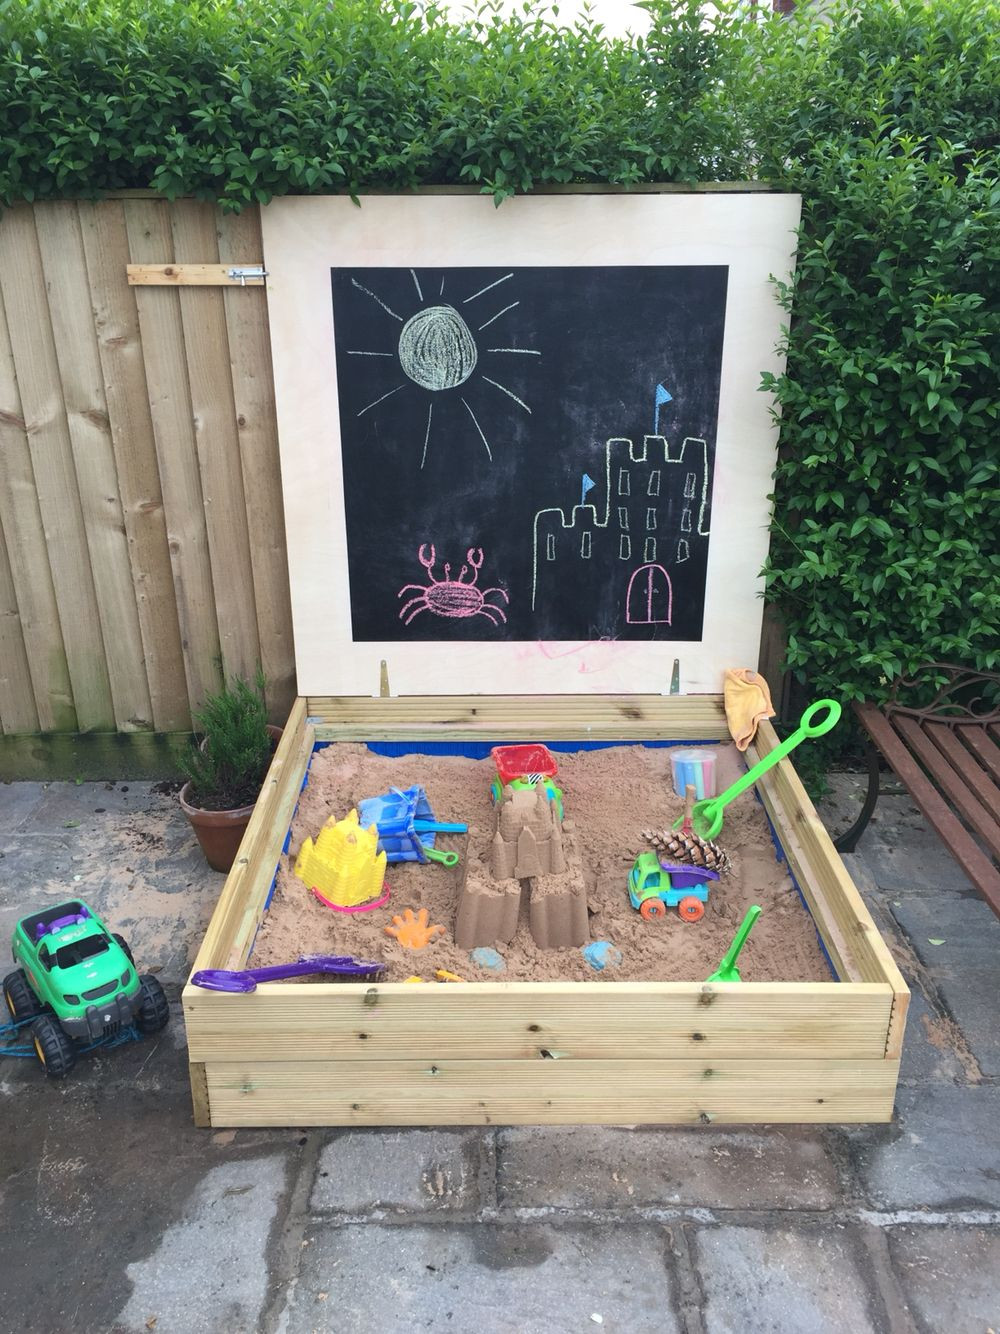 Best ideas about DIY Kids Sandbox . Save or Pin Homemade sandpit using decking board and a blackboard lid Now.